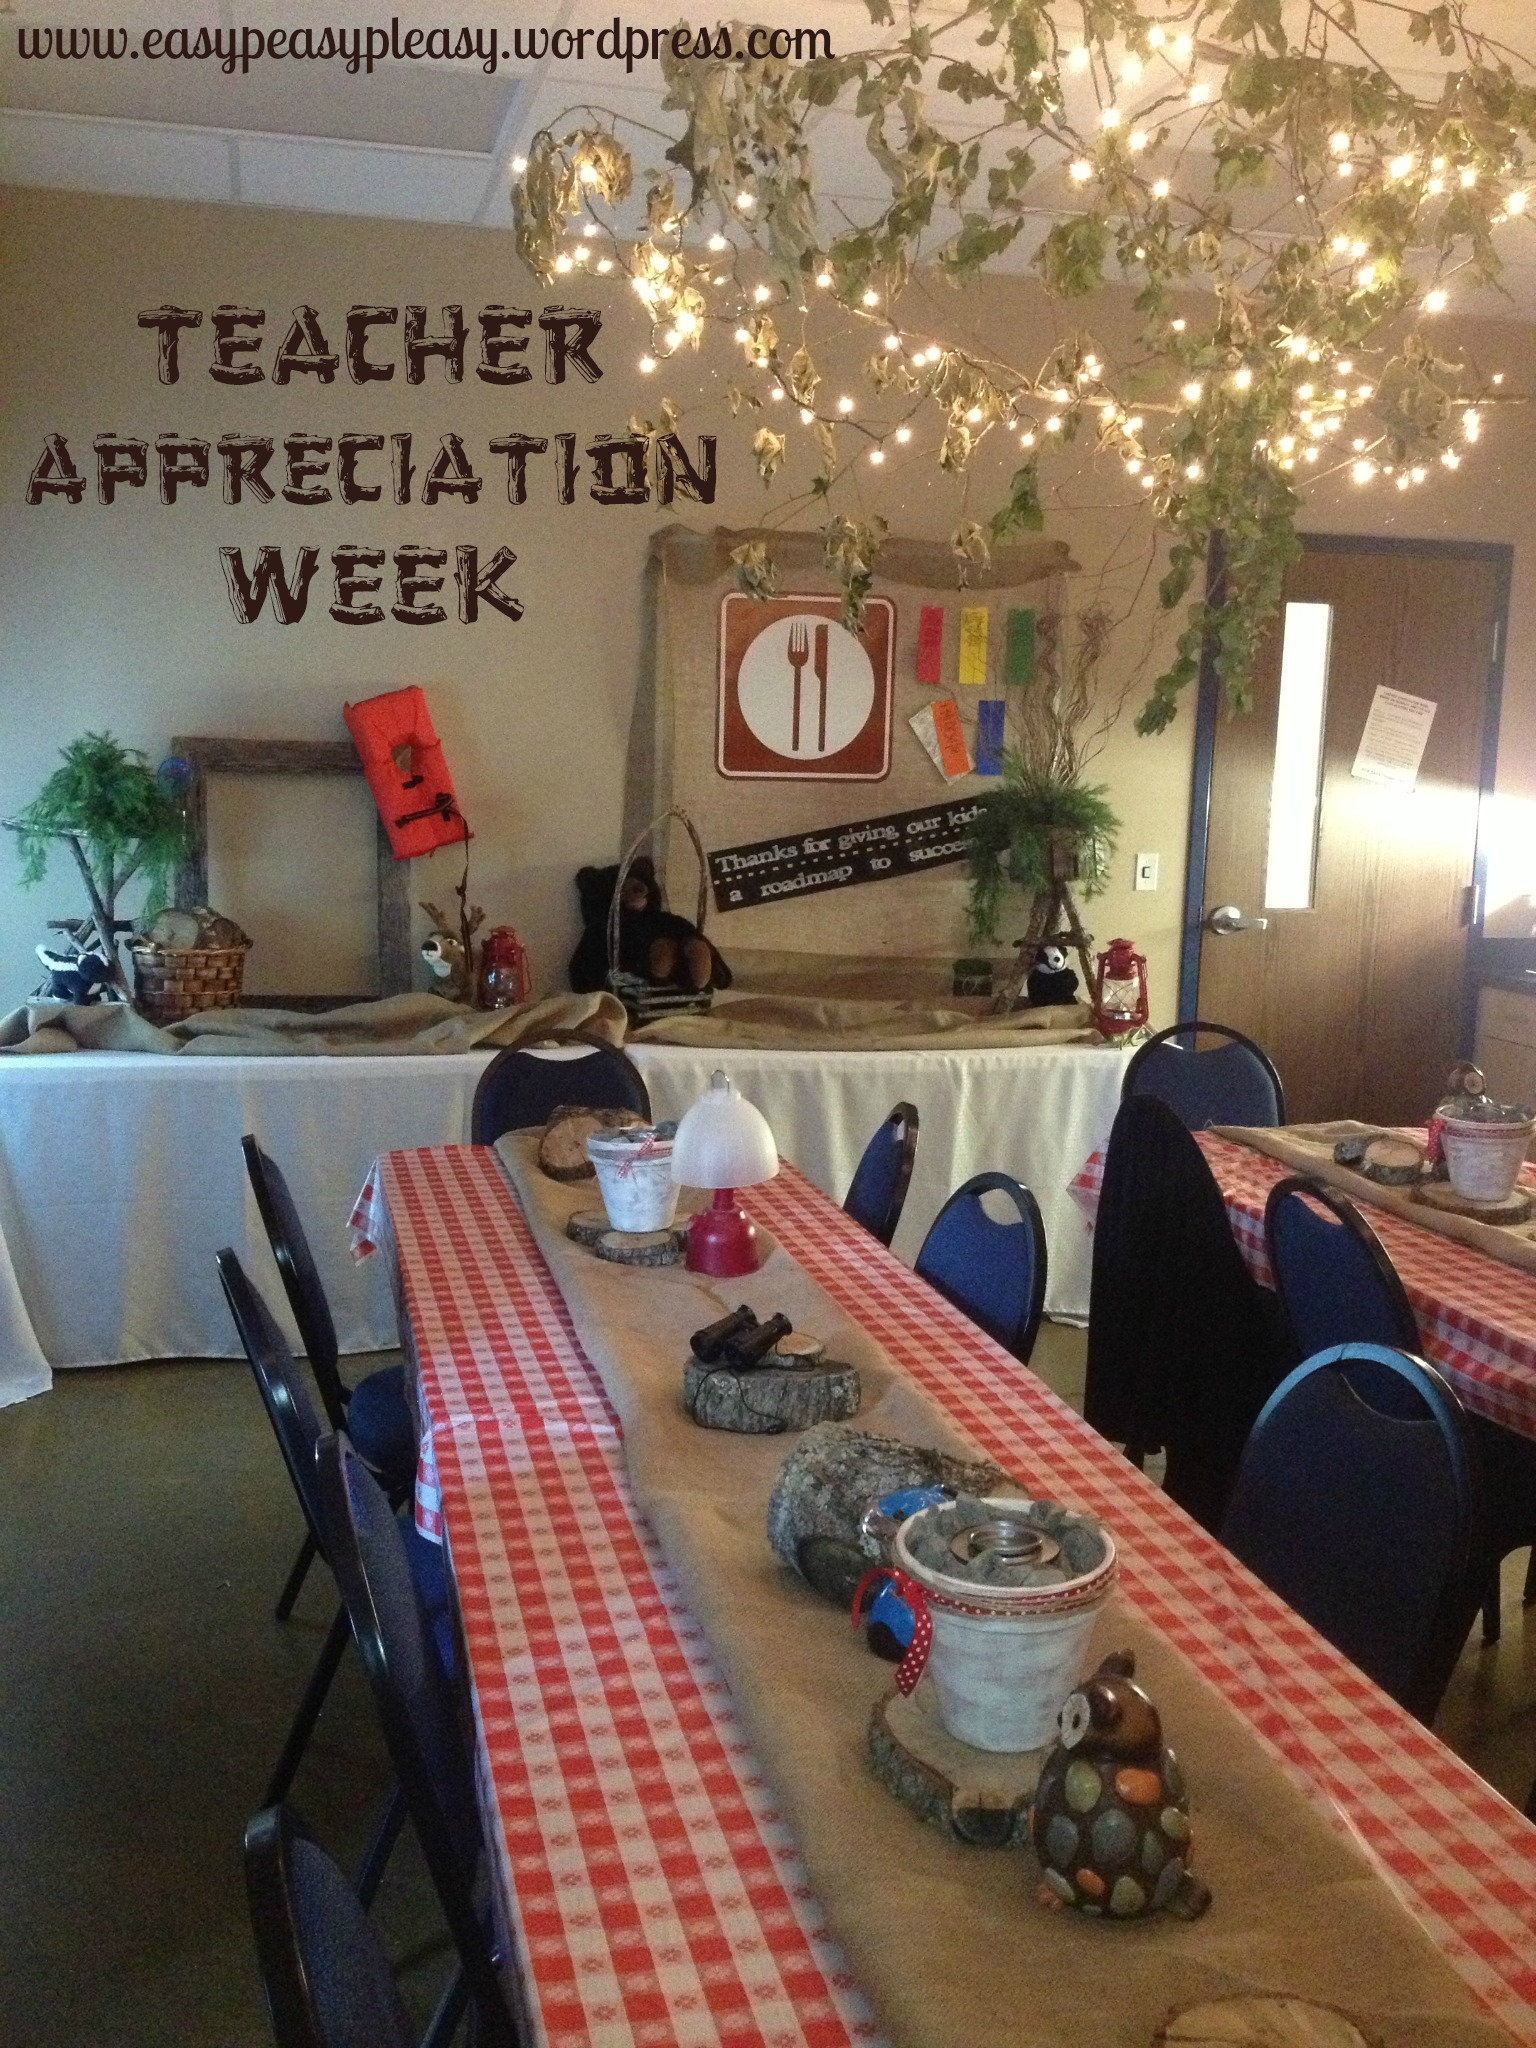 Teacher Appreciation Week Camping Theme tables and buffet tables